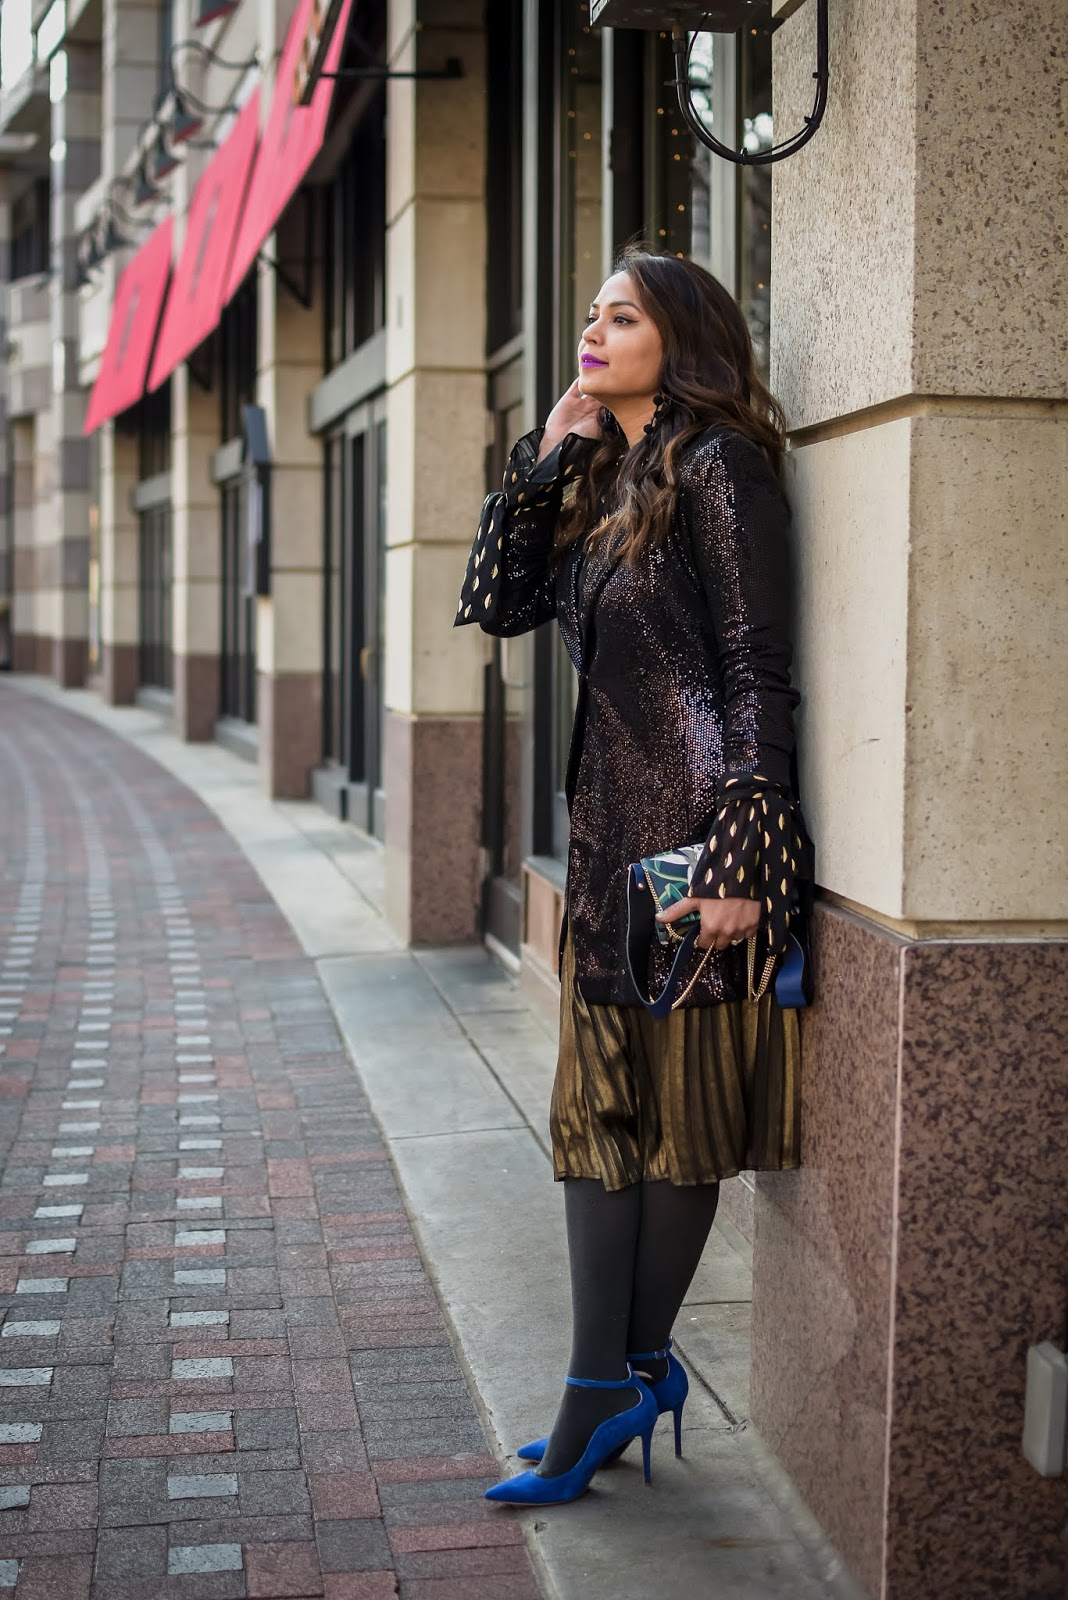 holiday outfit no 3, sequin boyfriend blazer, holiday look, pleated metallic midi skirt, blue anklt strap pumps, style, street style, fashion, DC blogger, Saumya Shiohare, myriad musings .